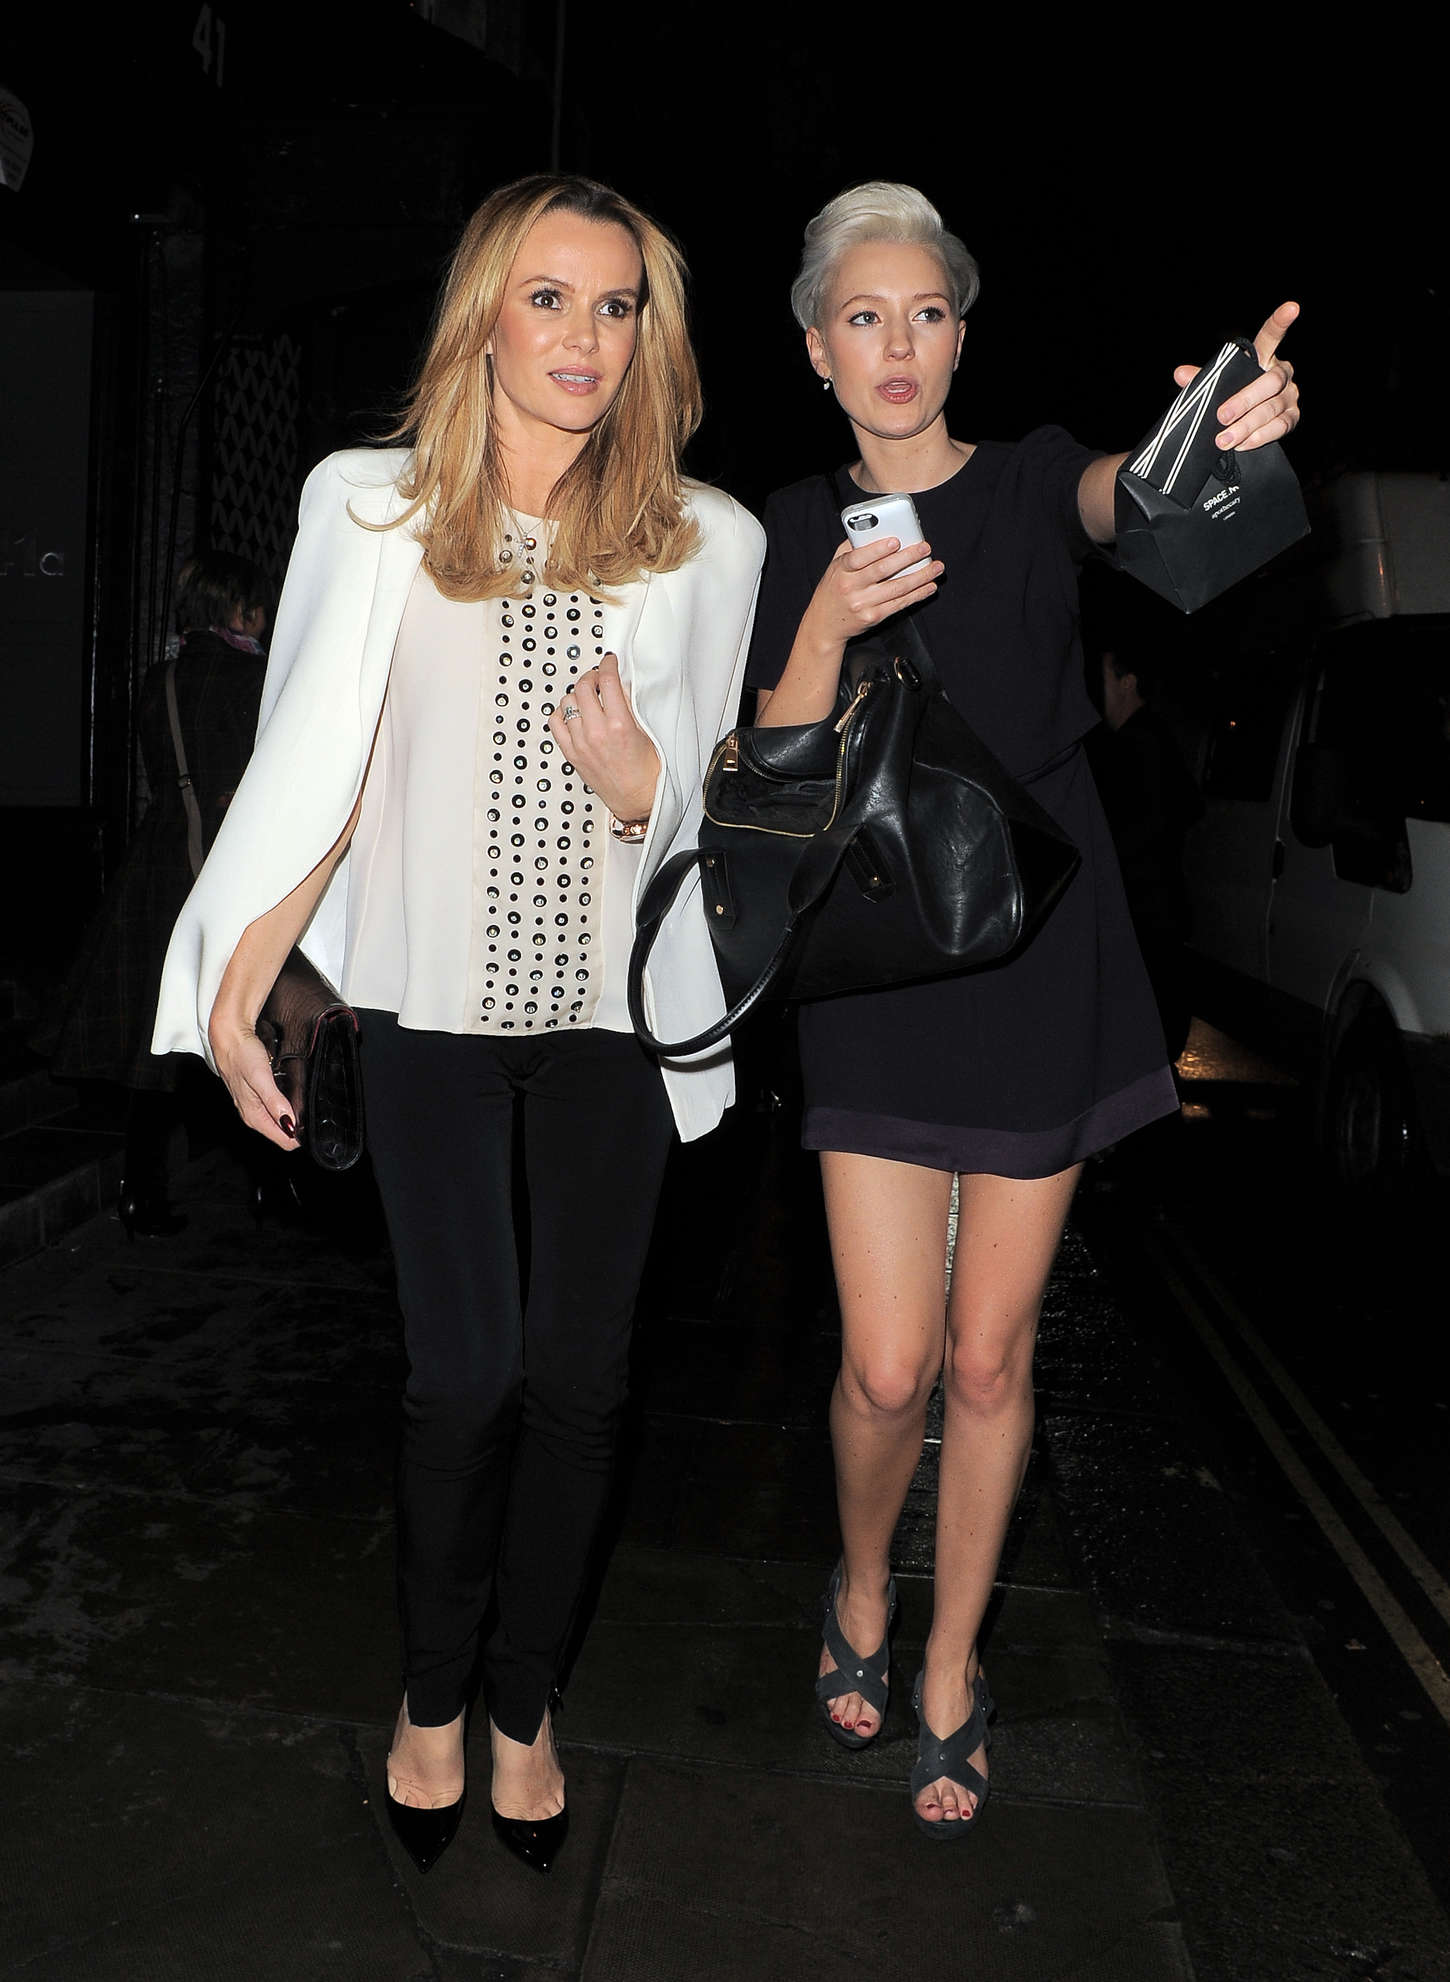 Amanda Holden - Leaving the Groucho Club in London